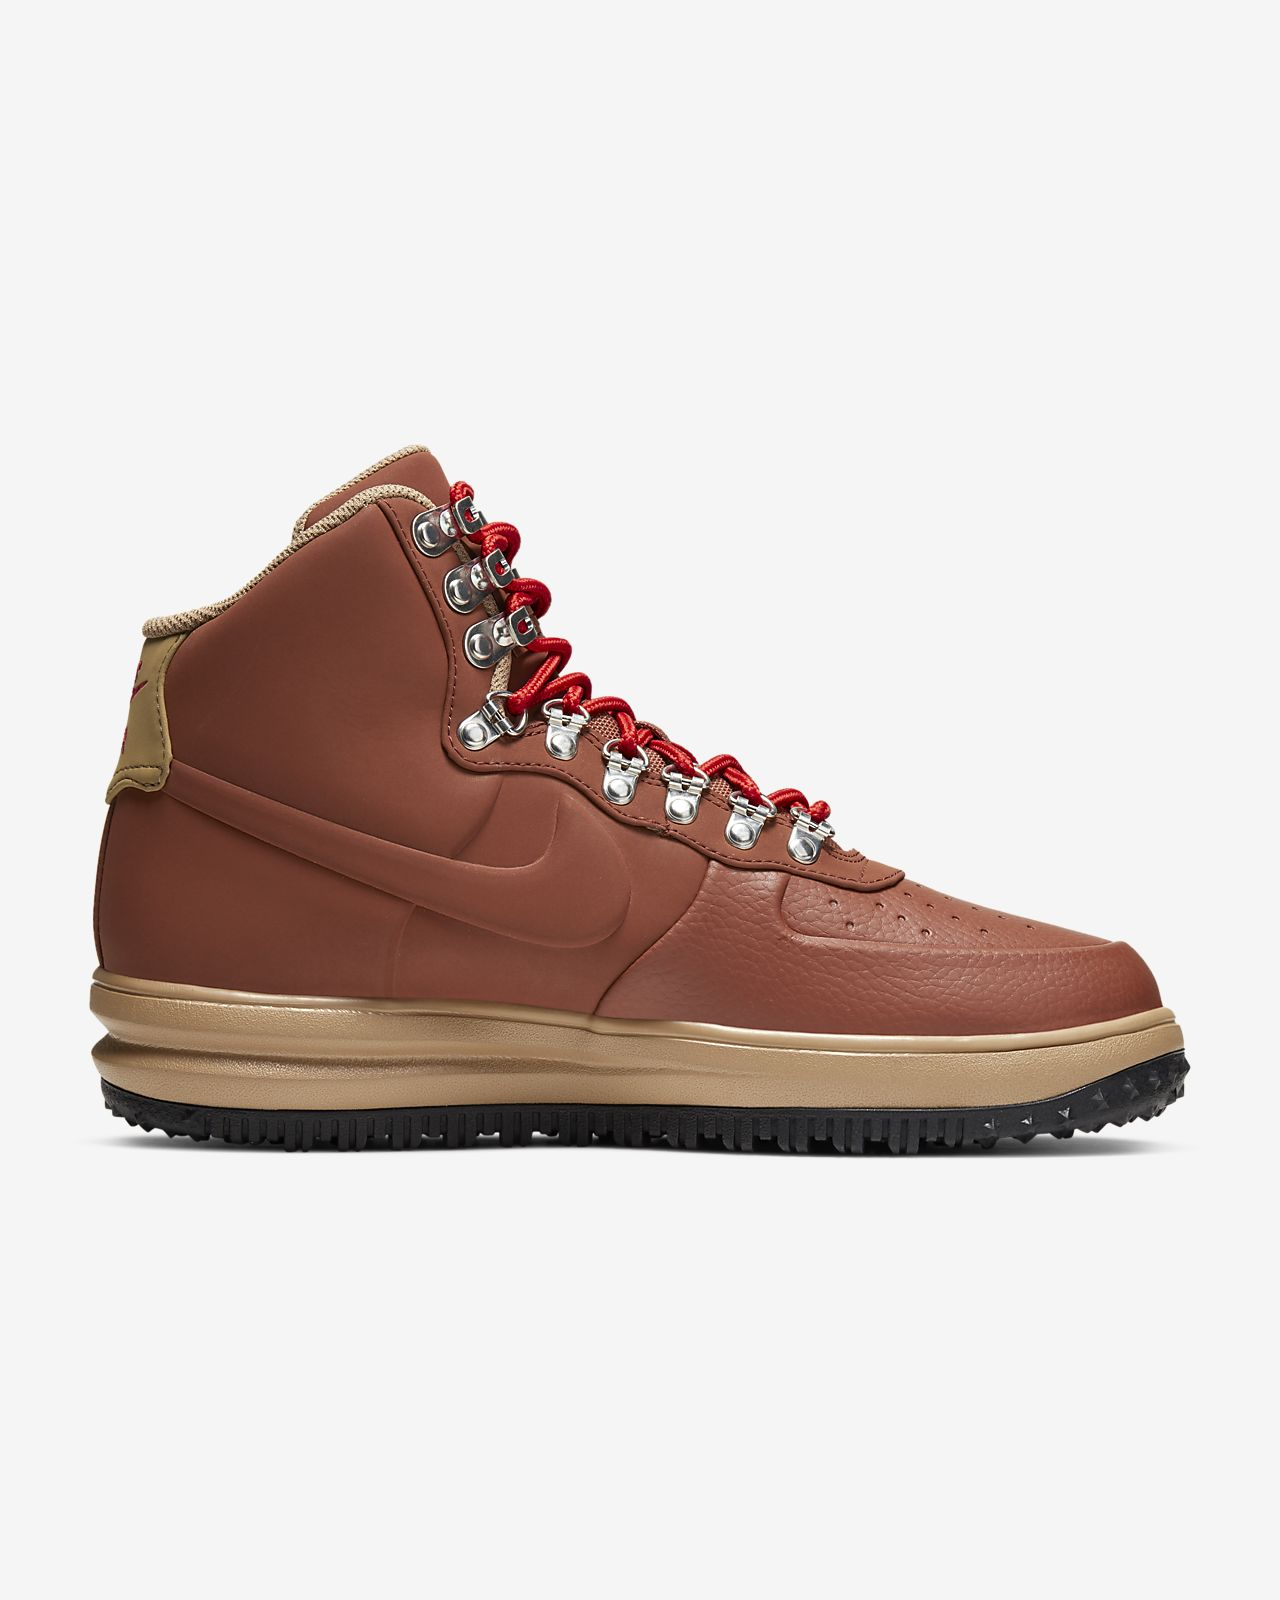 Duckboot Nike Lunar Force 1 '18 pour Homme. Nike MA